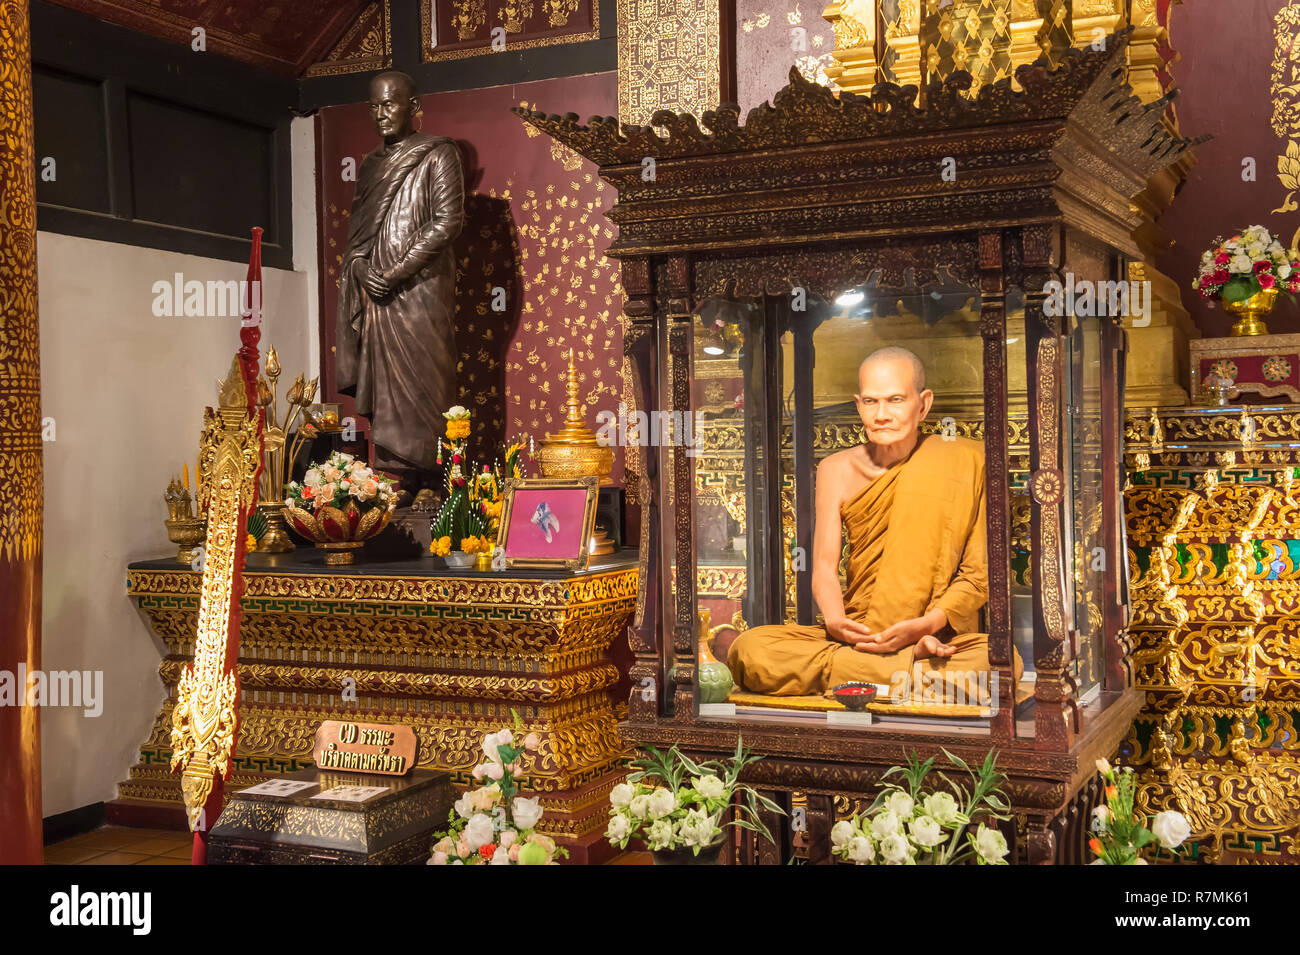 Life-like statue of a revered monk, Wat Chedi Luang, Chiang Mai, Thailand Stock Photo